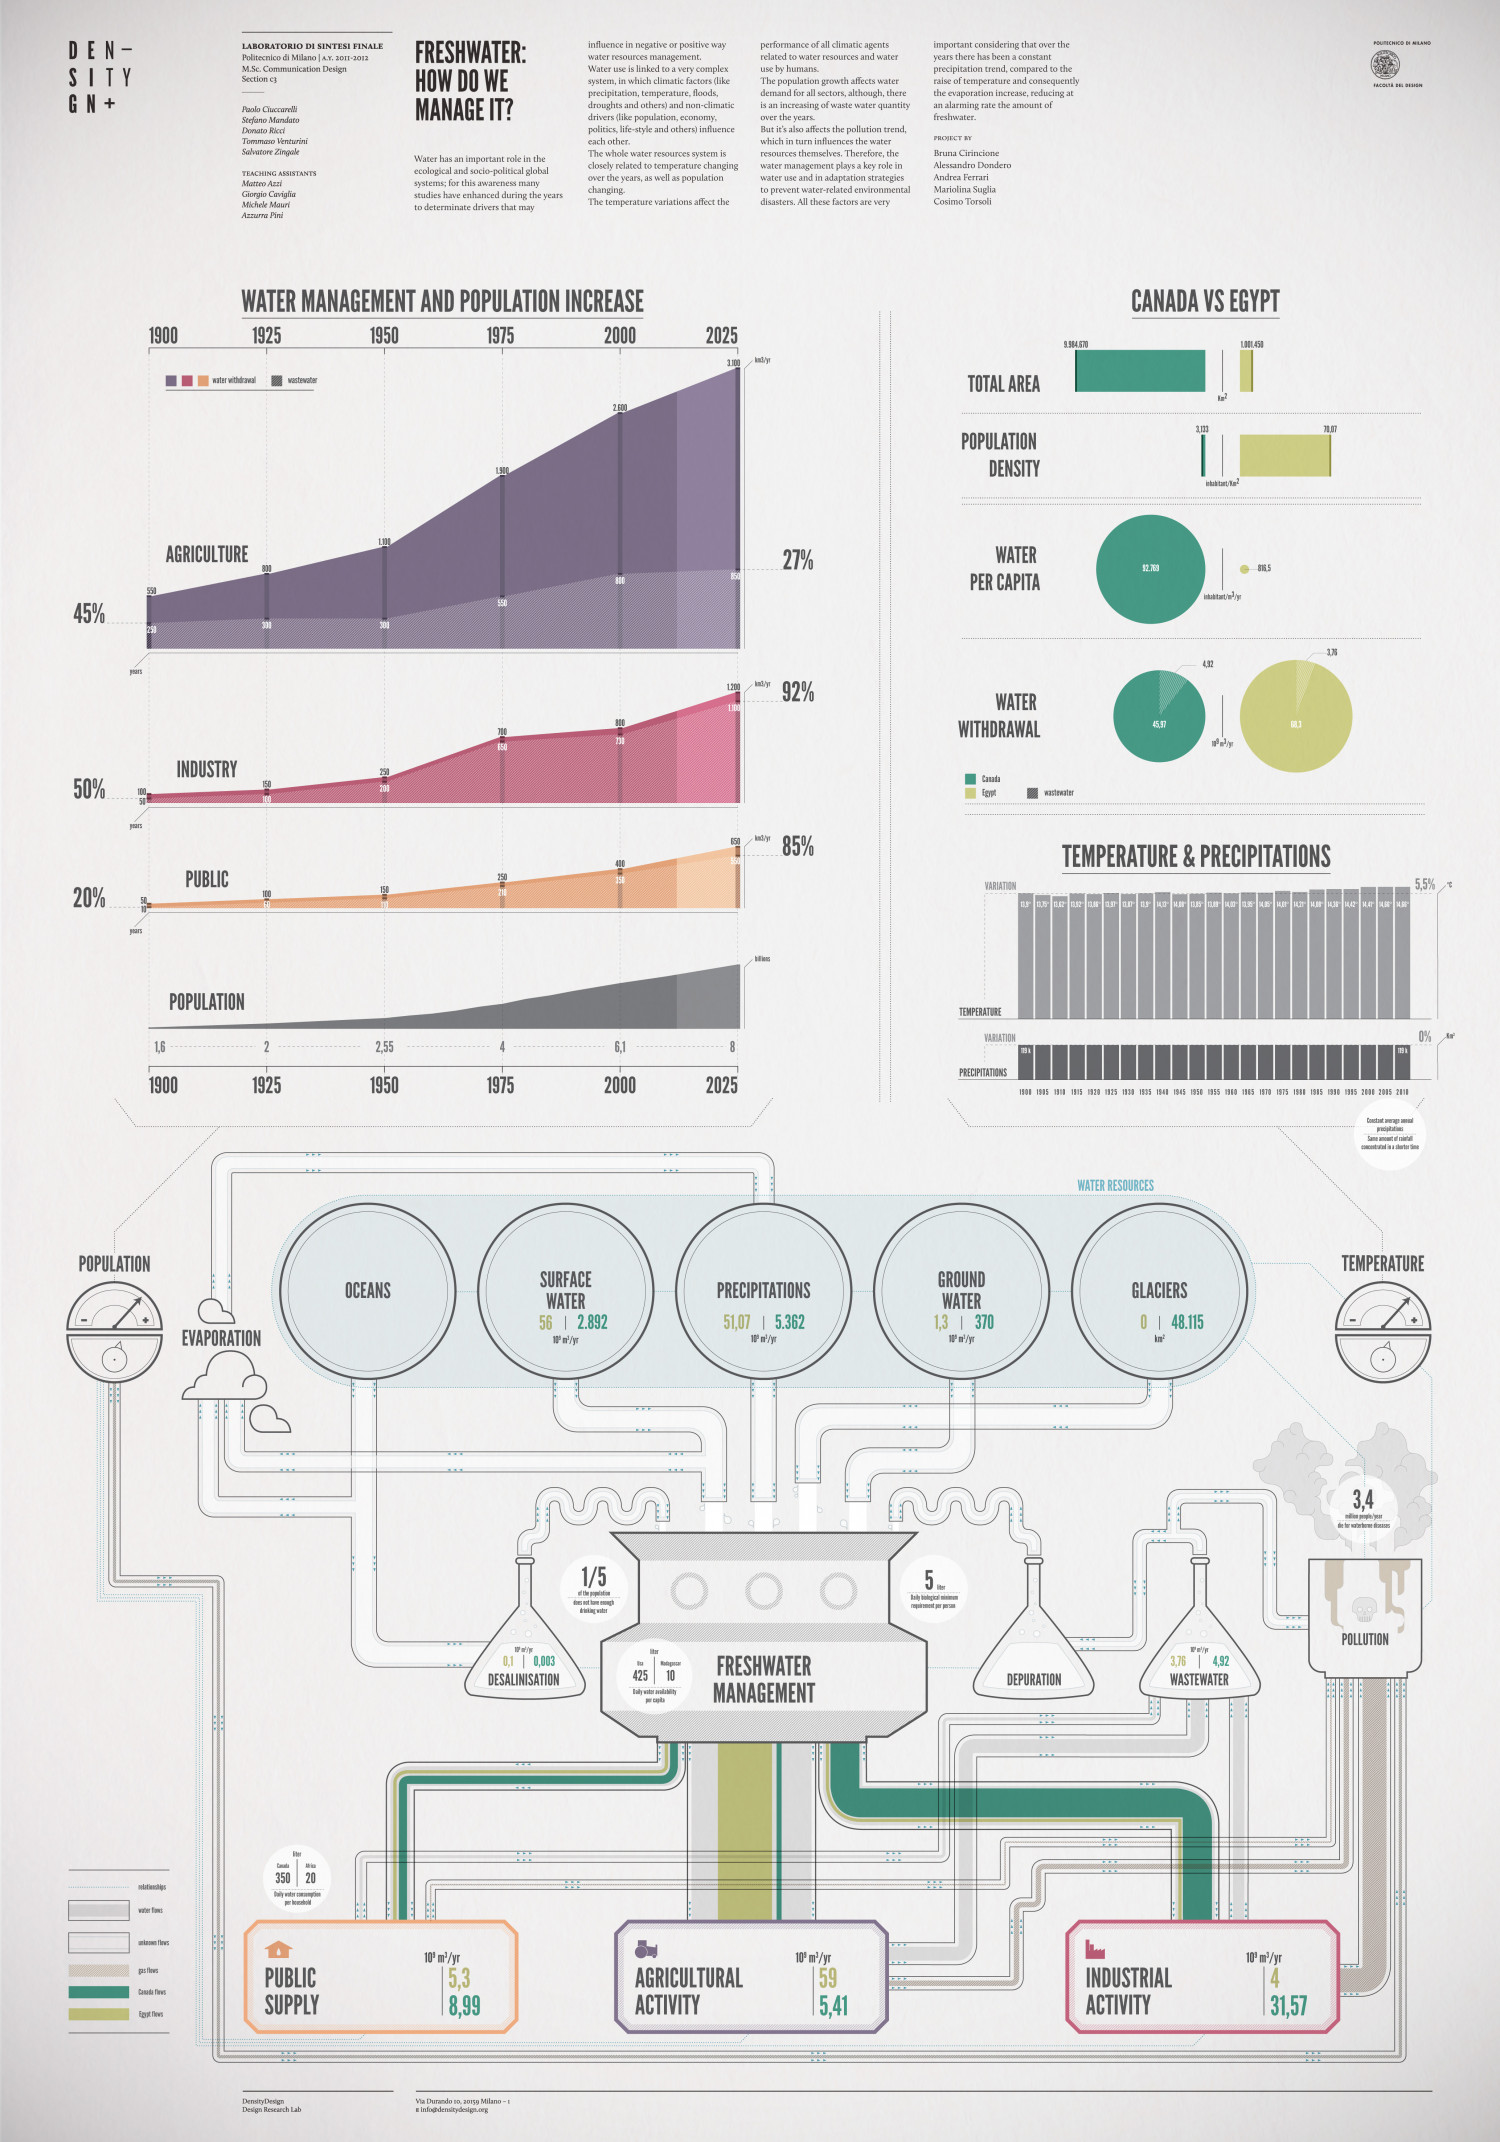 Freshwater: how do we manage it? Infographic